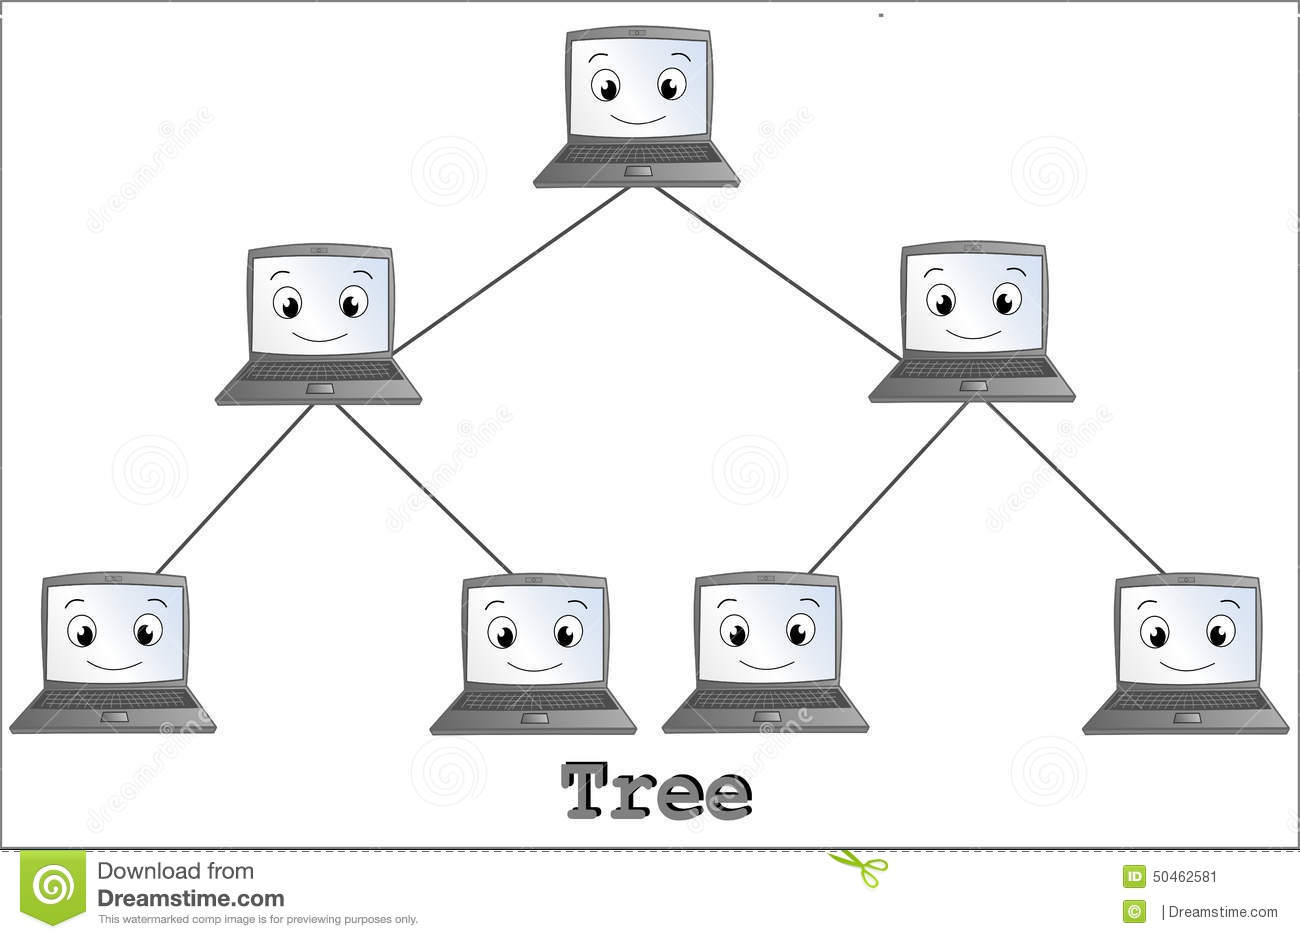 Tree Network Topology Stock Illustration Image Of Data